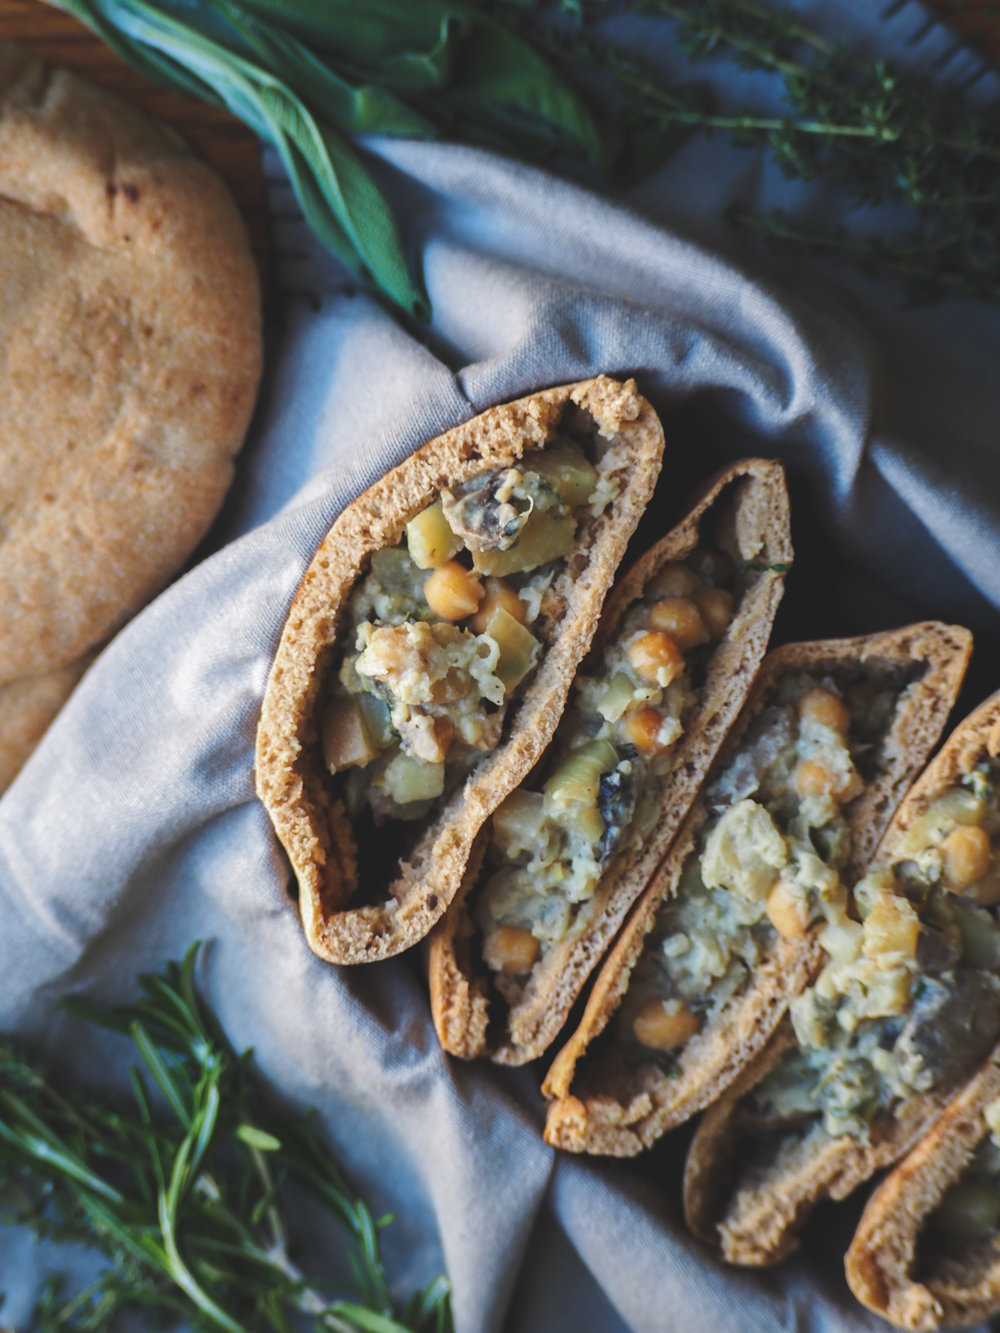 Cauliflower Stuffed Pita with Chickpeas and Fresh Herbs | Plant-Based Vegan, Oil-Free, Delicious, Whole Food Meal